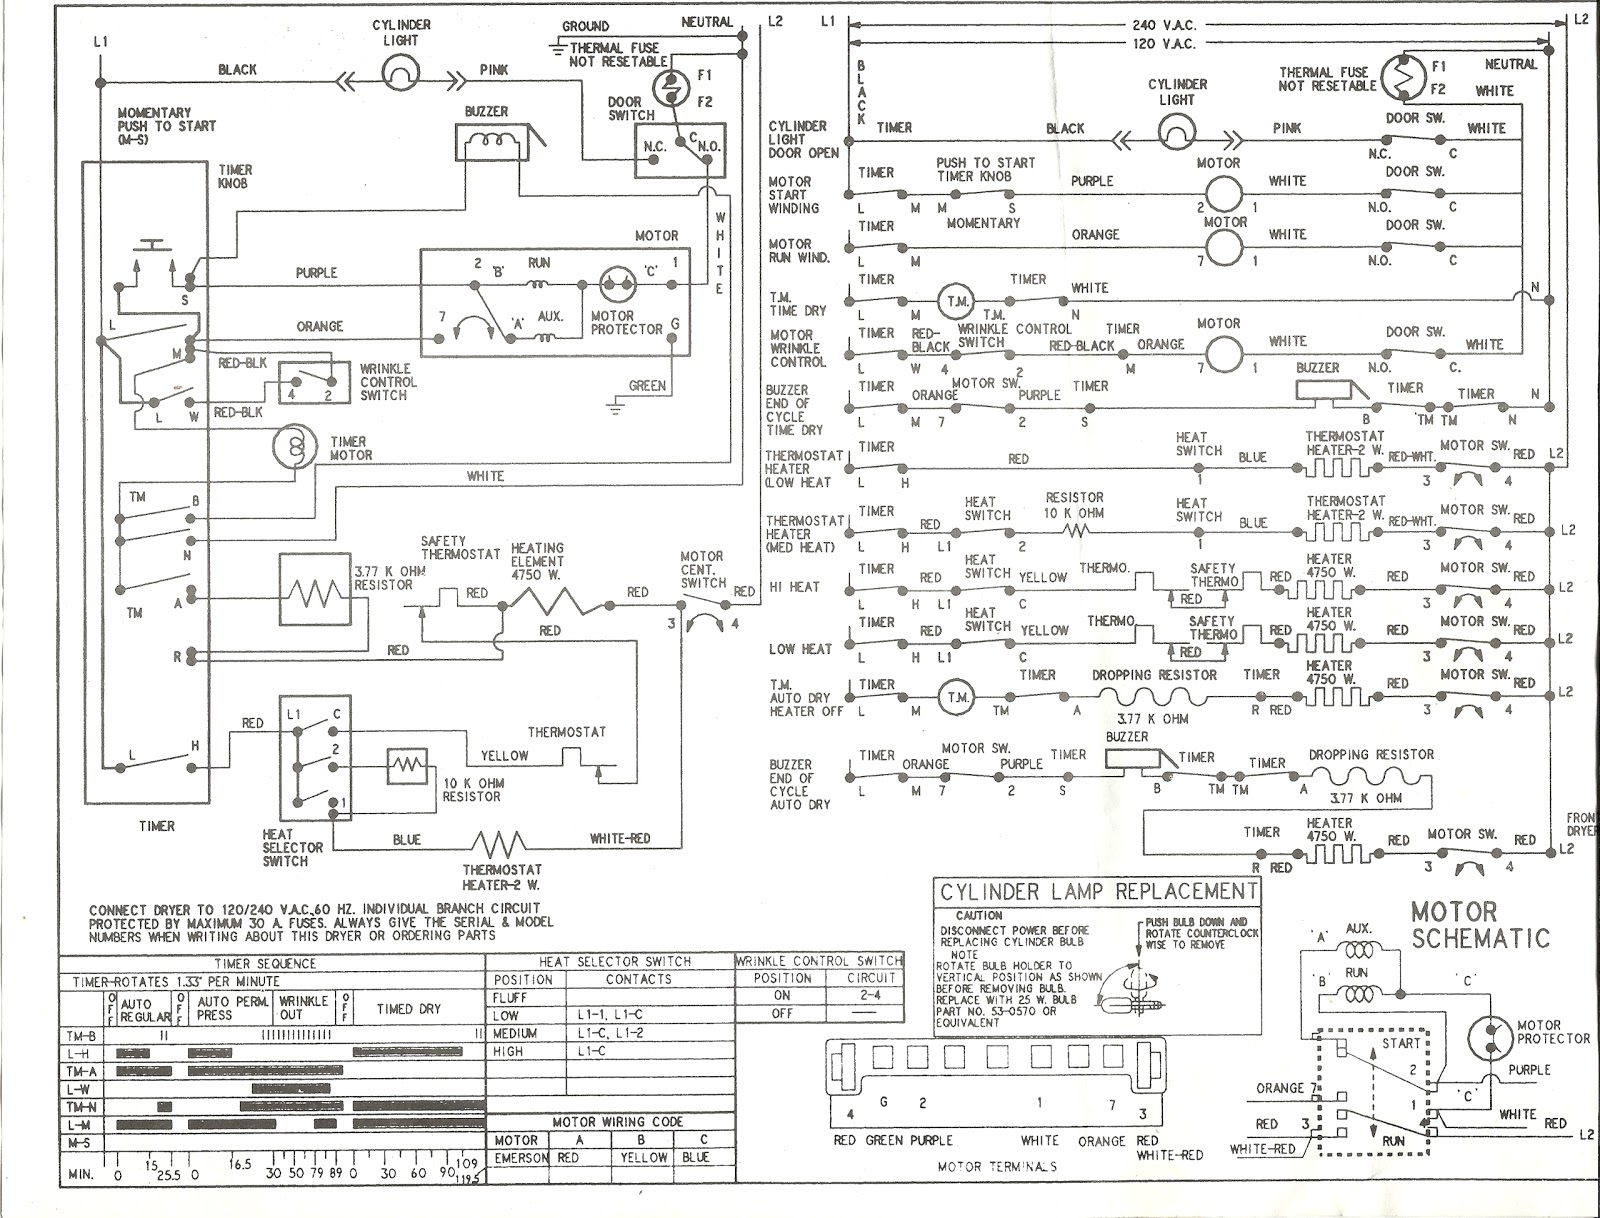 kenmore washer wiring diagram on wiring diagram parts wiring for kenmore 80 series washer parts diagram wiring diagram for whirlpool washer on wiring download wirning  at n-0.co